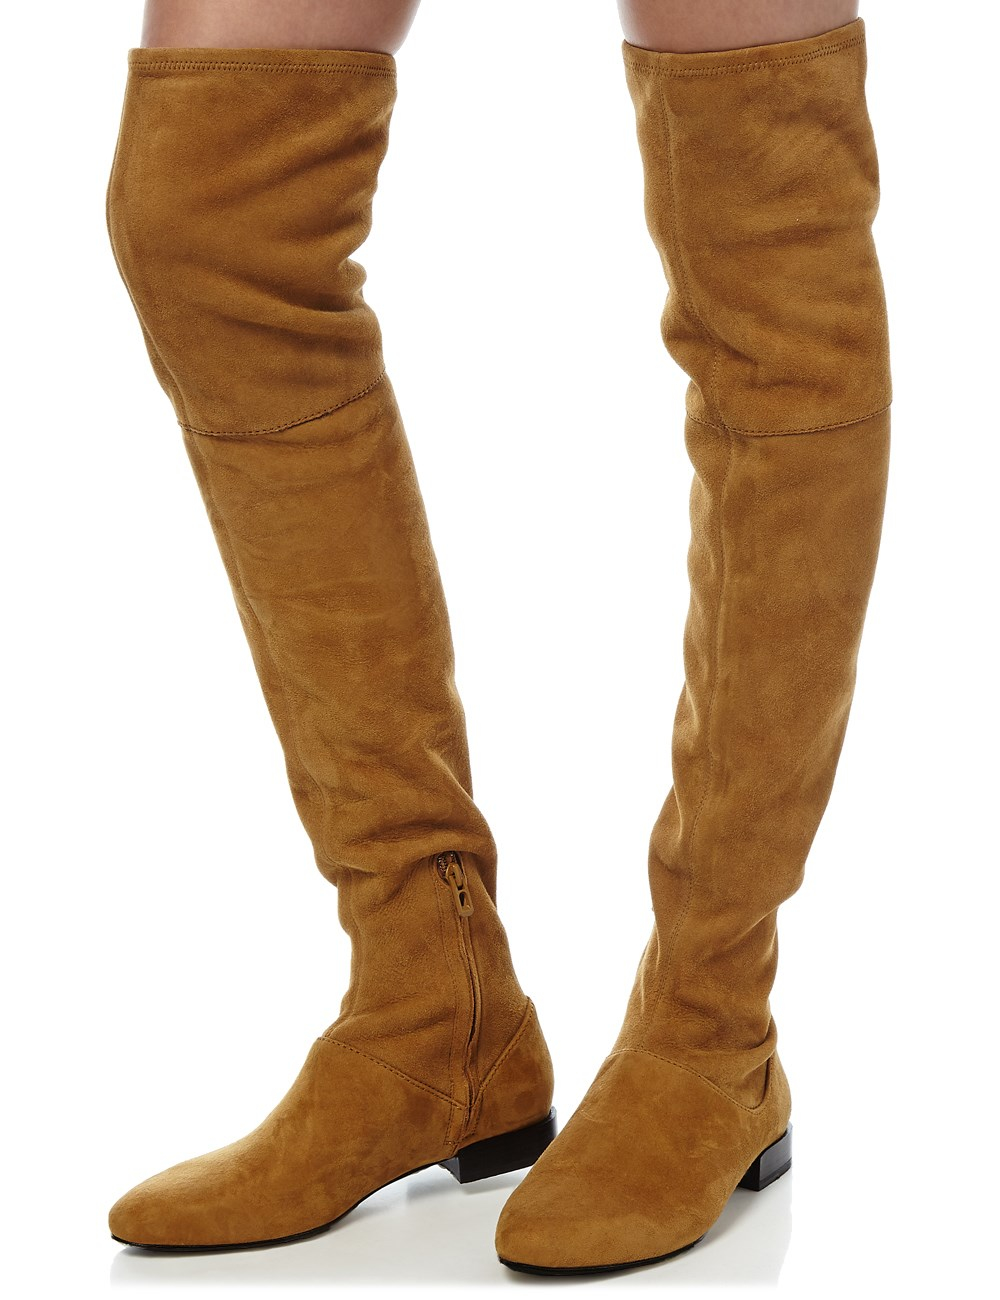 3.1 phillip lim Oak Suede Thigh High Louie Boot in Brown | Lyst